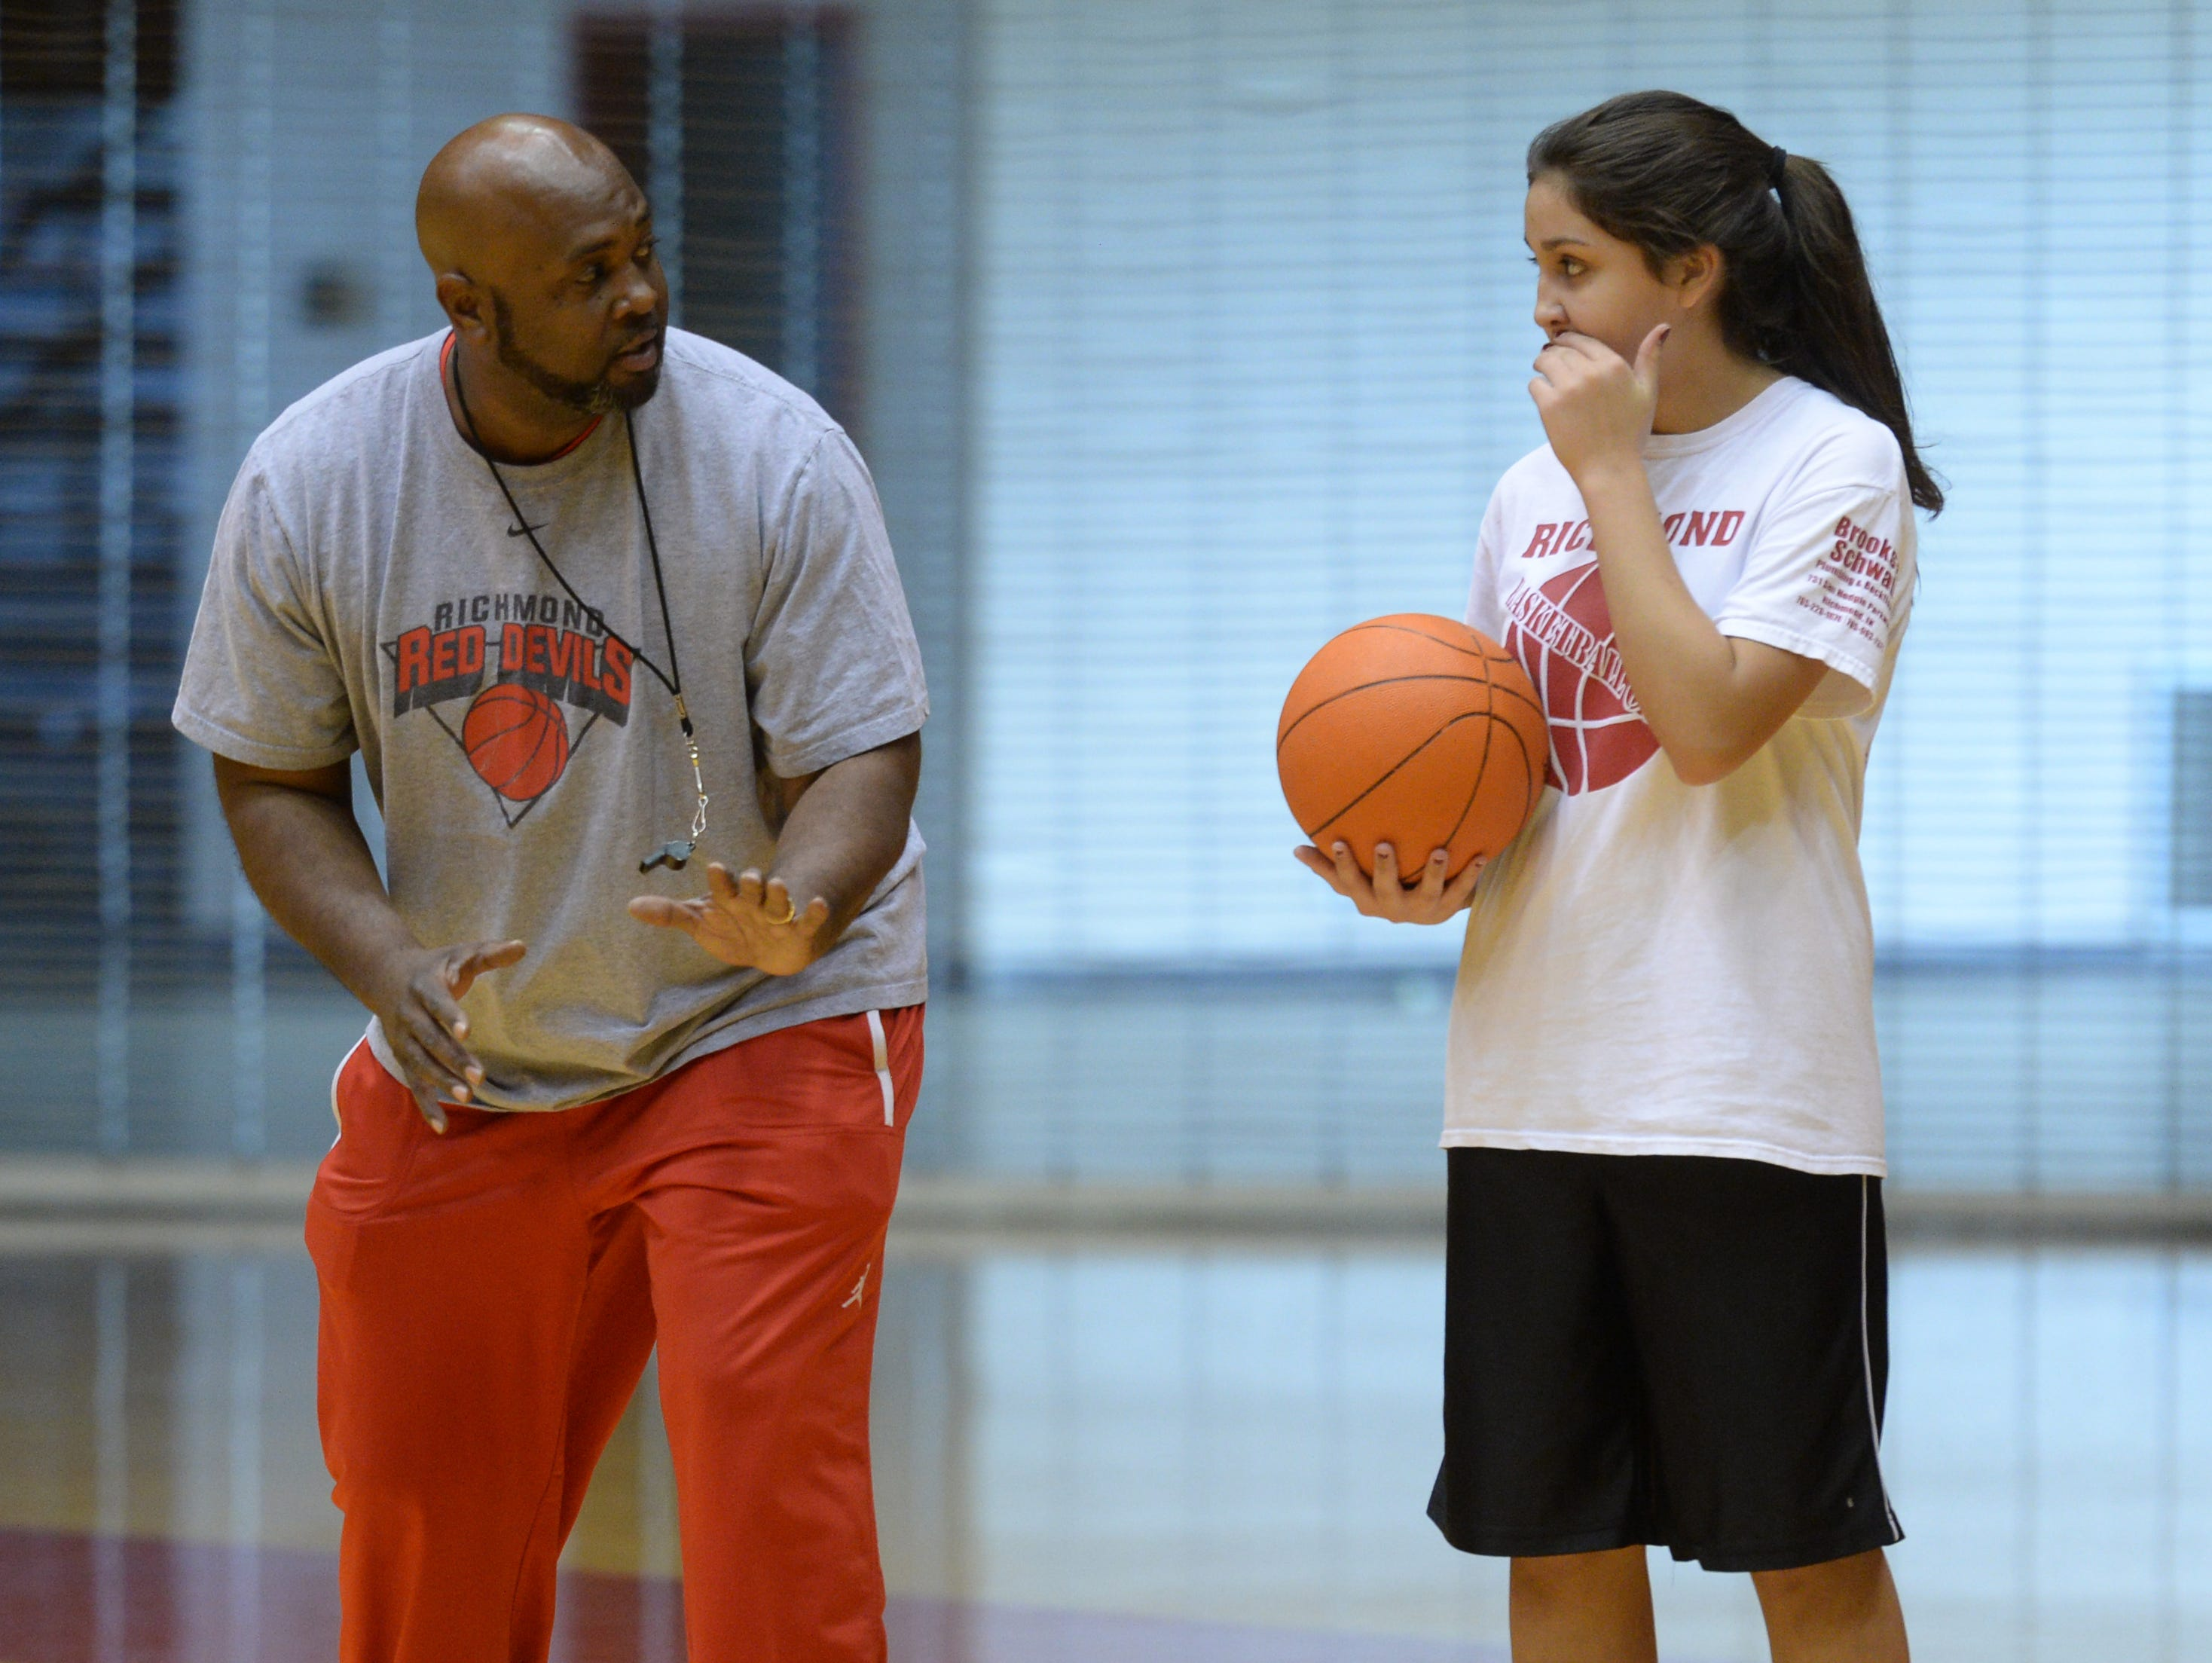 Richmond High School basketball coach Rick Wedlow gives a tip to a participant during a basktball camp for young athletes Saturday, Nov. 7, 2015 in Richmond.